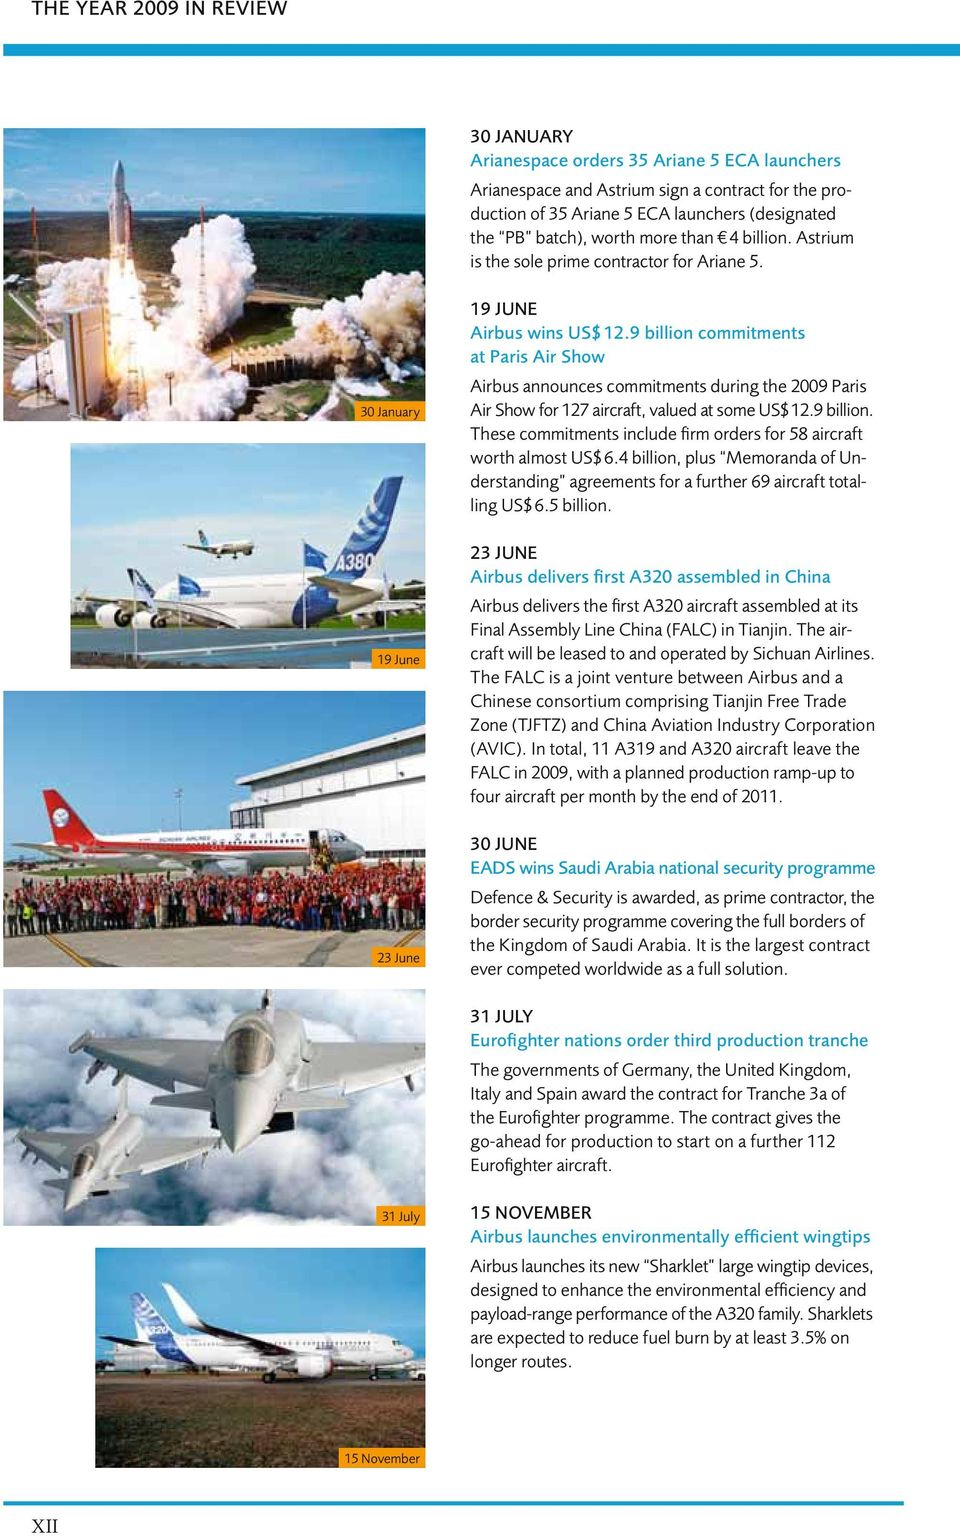 9 billion commitments at Paris Air Show Airbus announces commitments during the 2009 Paris Air Show for 127 aircraft, valued at some US$ 12.9 billion. These commitments include firm orders for 58 aircraft worth almost US$ 6.